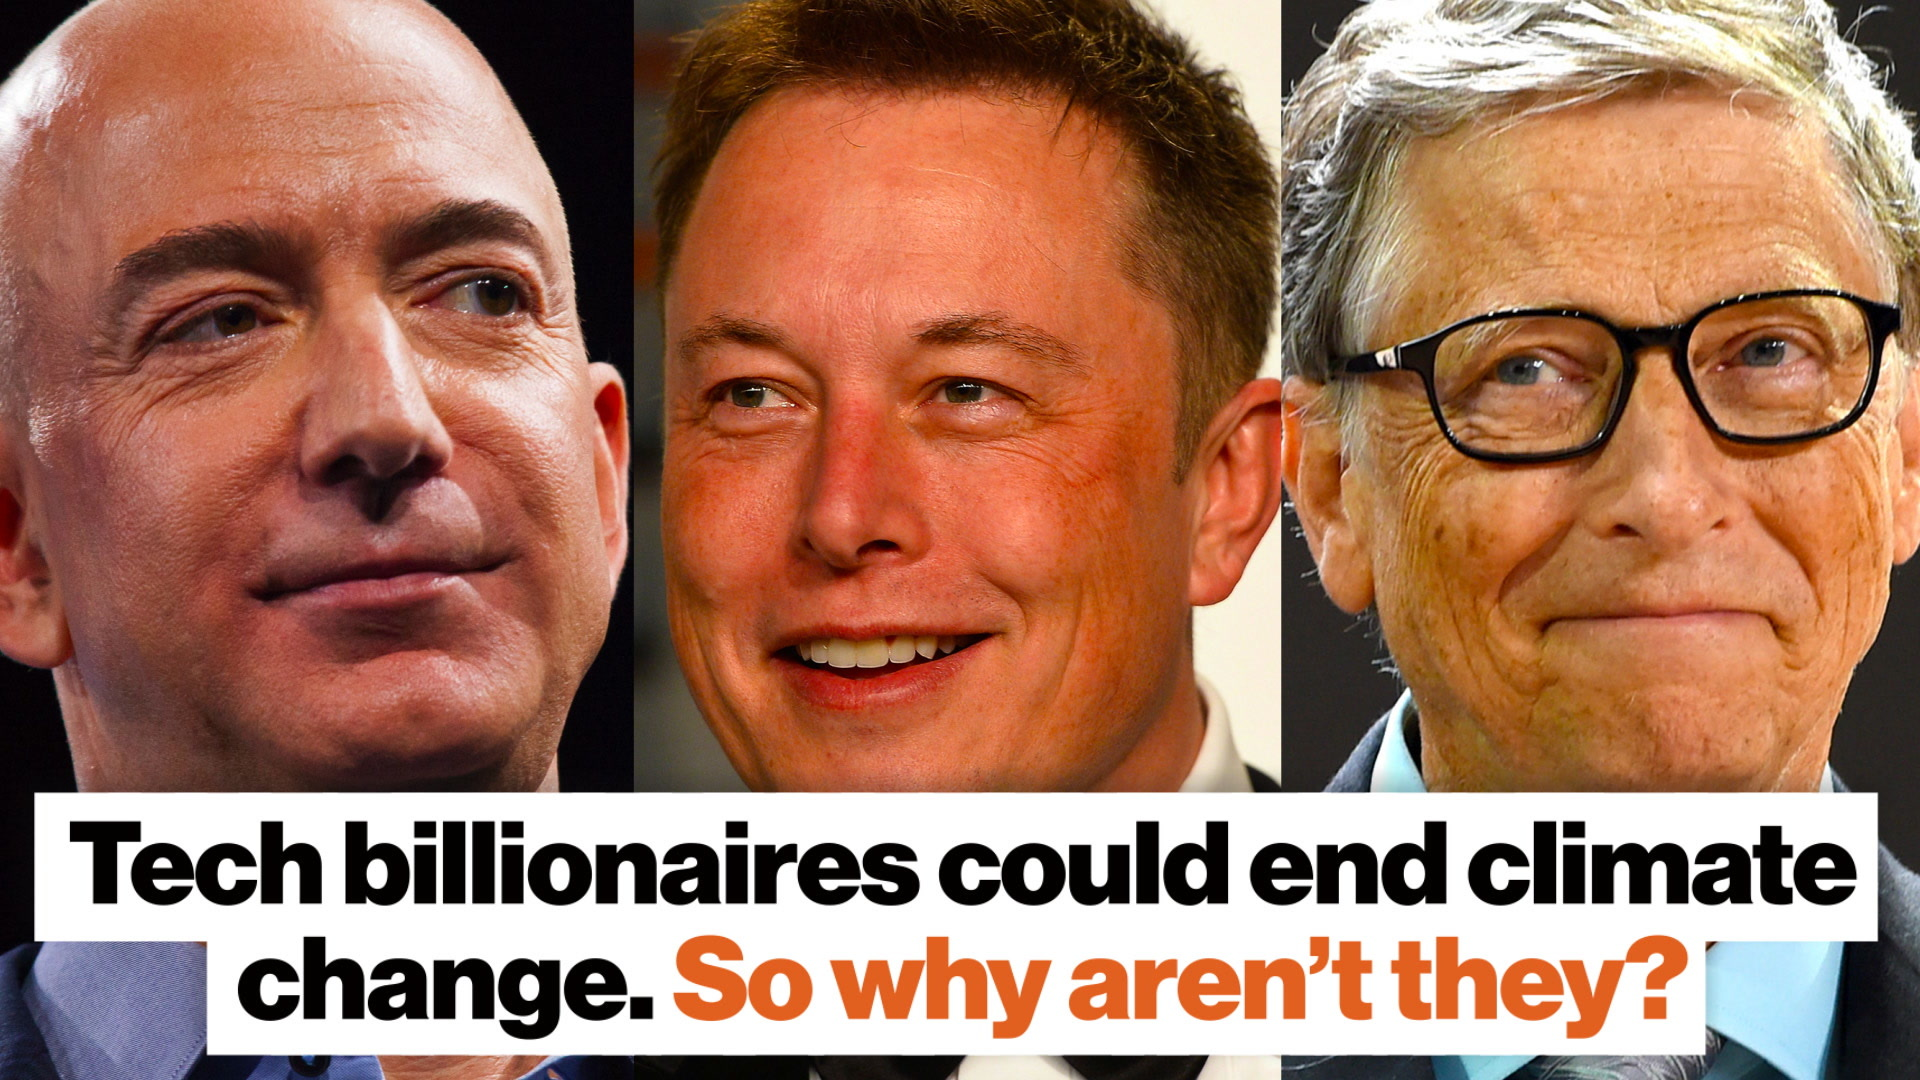 Tech billionaires could end climate change. So why aren't they?